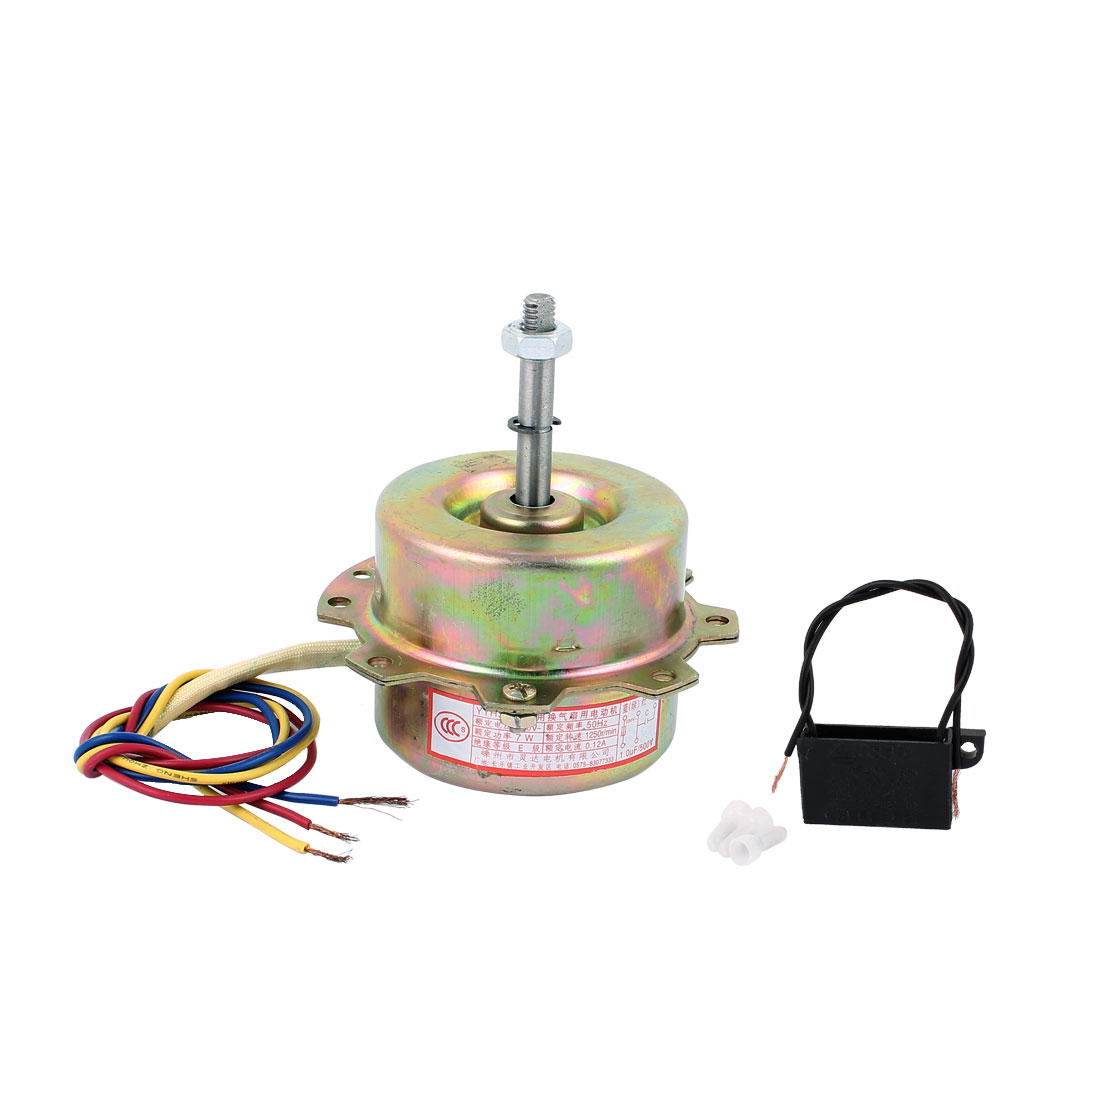 AC 220V 0.12A 7W 1250RPM 8mmx41mm Shaft Double Bearing Ball Electric Ventilator Fan Motor